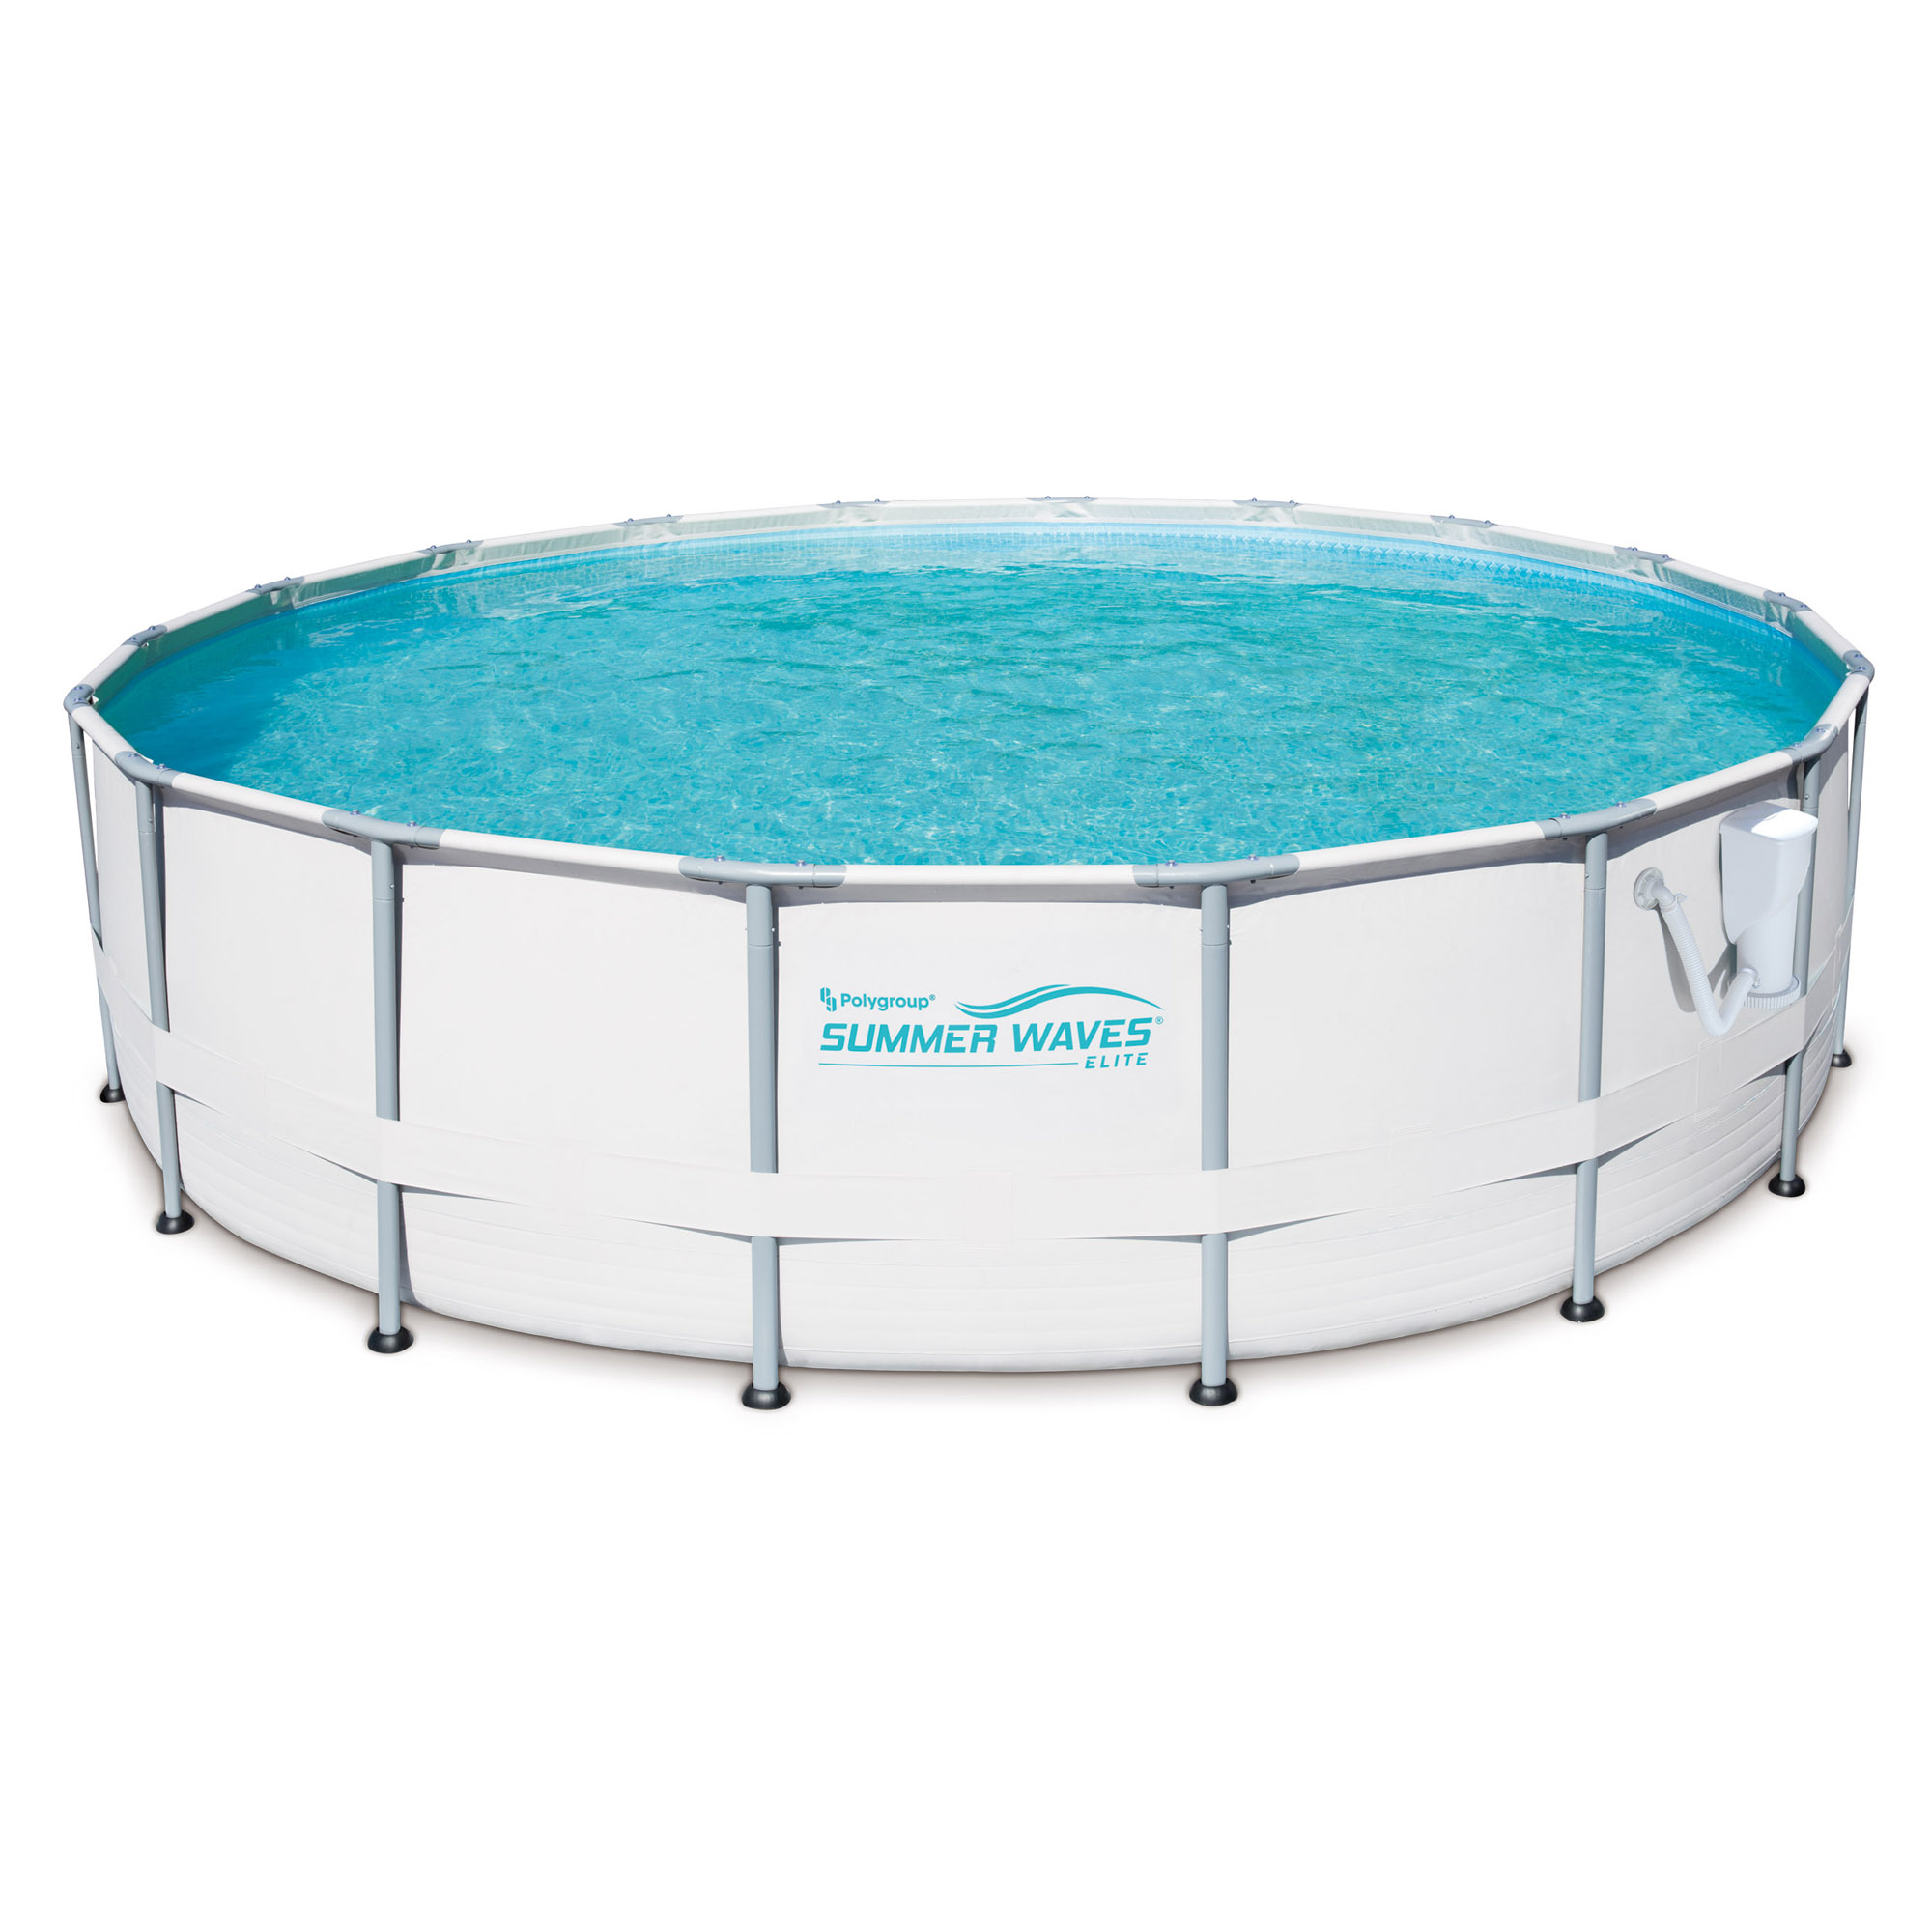 Summer waves elite 18 39 foot metal frame above ground pool set with filter pump ebay - Steel frame pool ...